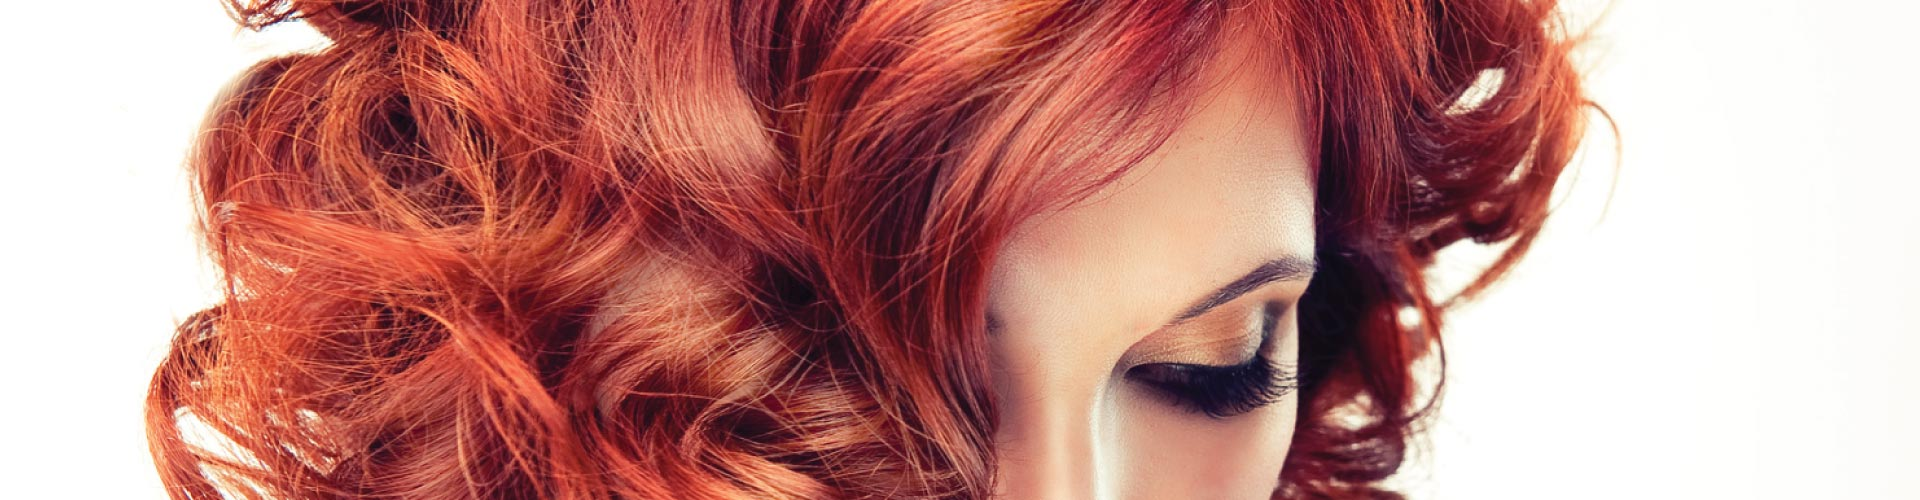 woman with beautiful styled red hair